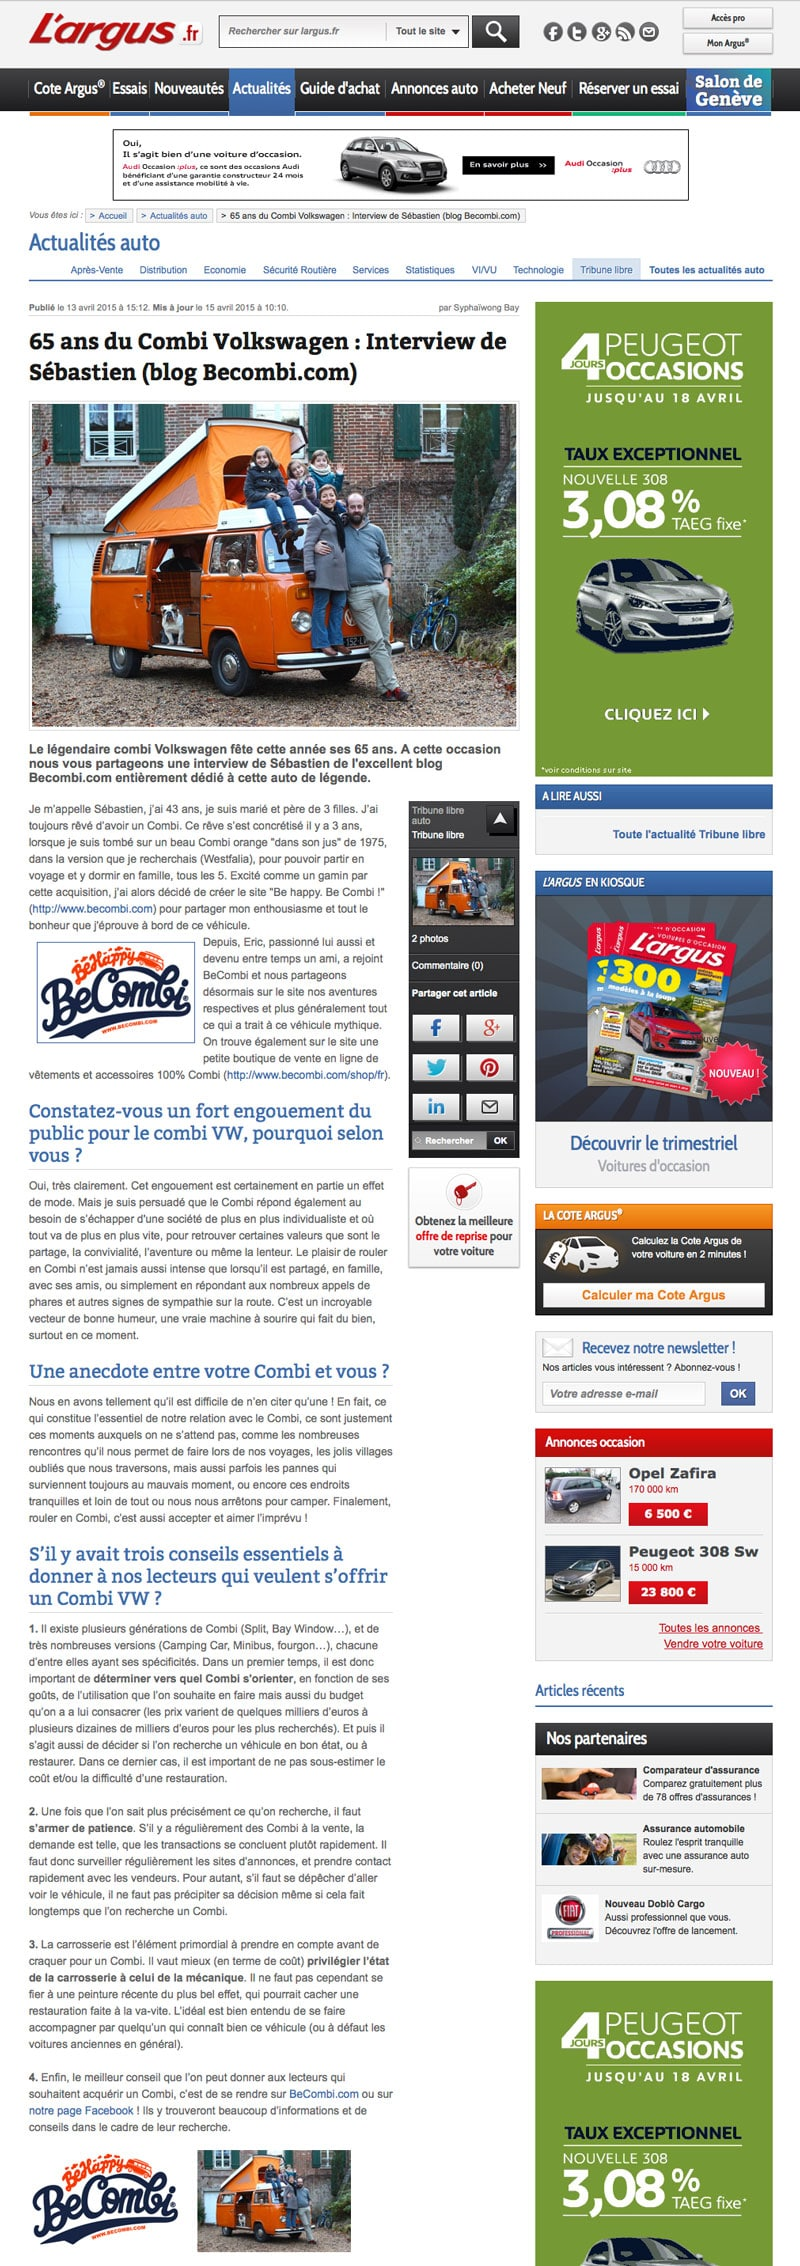 Interview Tribune Libre Argus 13 Avril 2015 | BeCombi